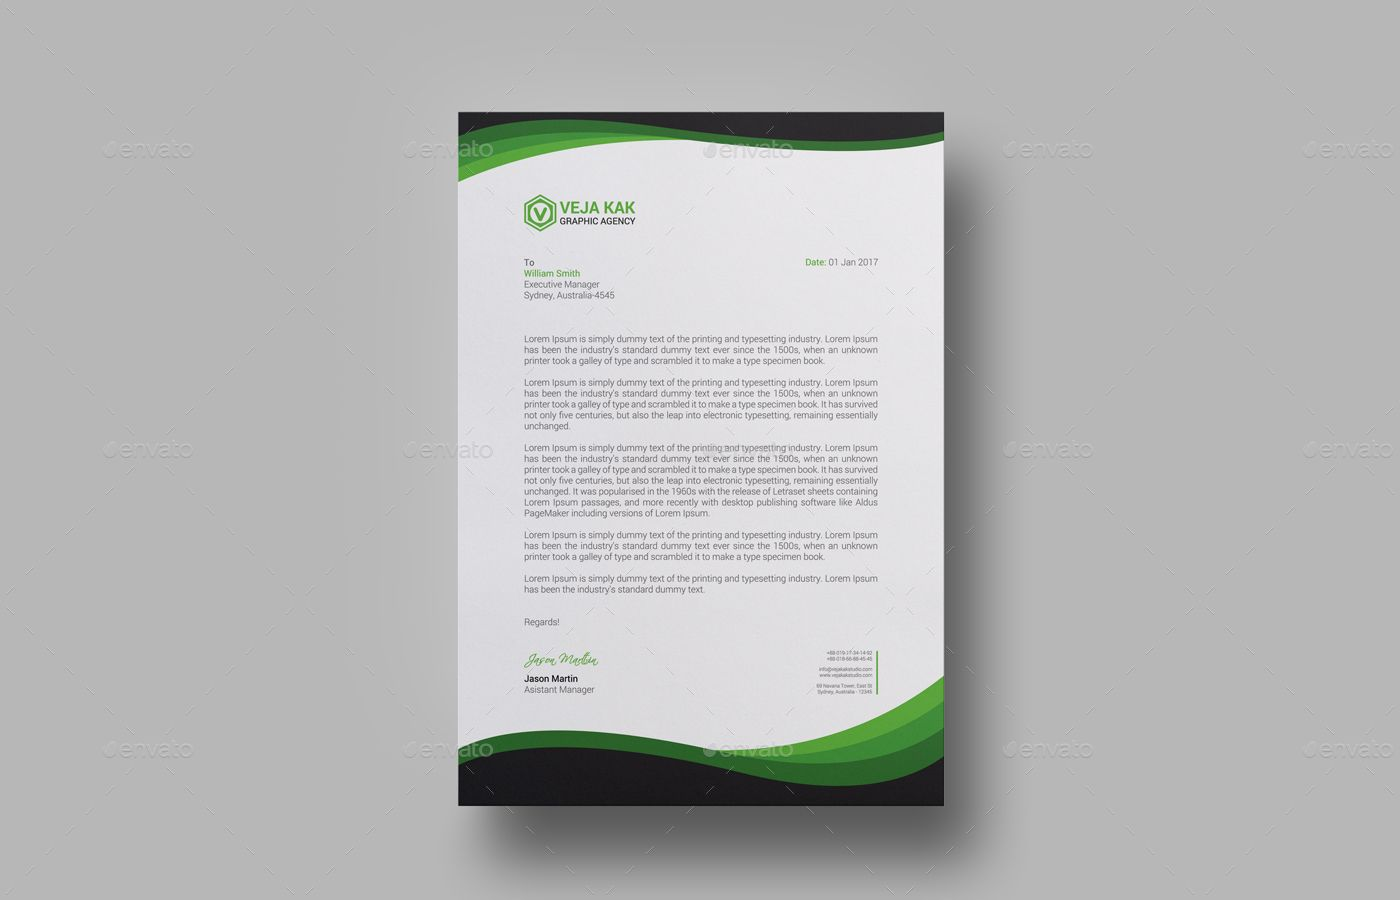 Sample Company Letterhead Template Download Psd Pdf